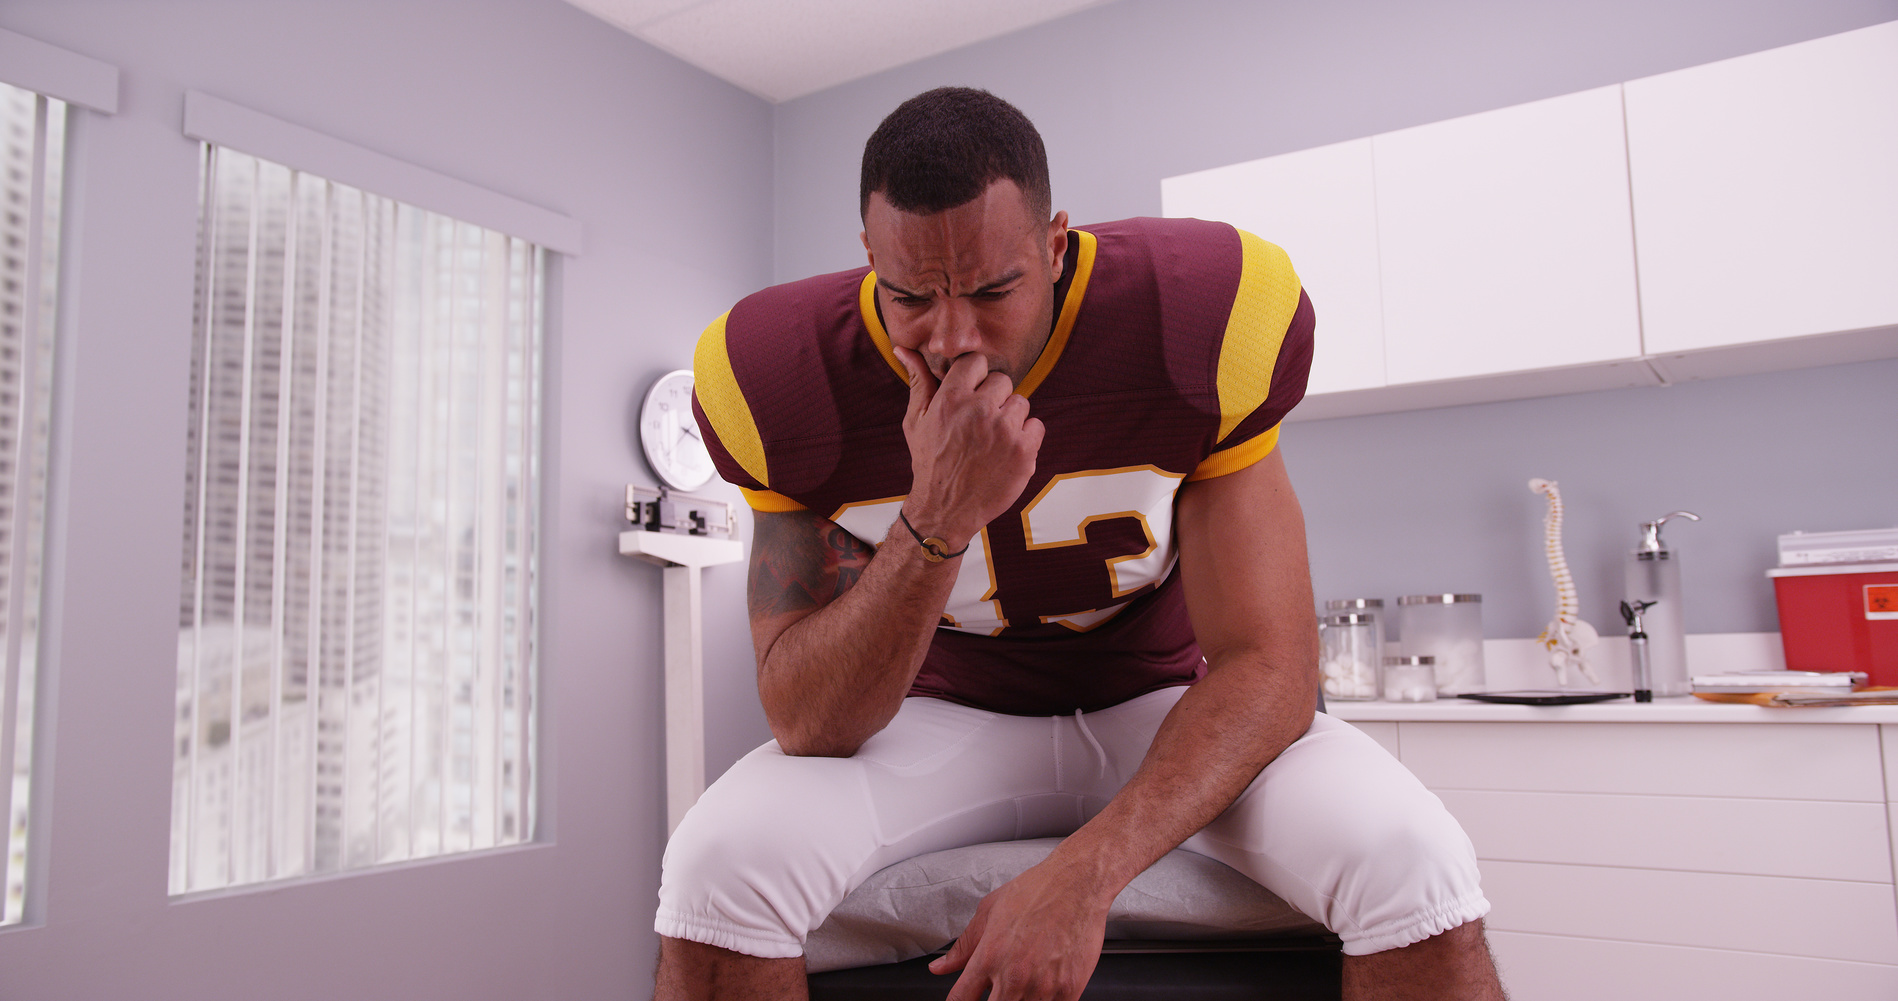 Fotolia_104436129_Football-Player-at-Doctors-Office_M